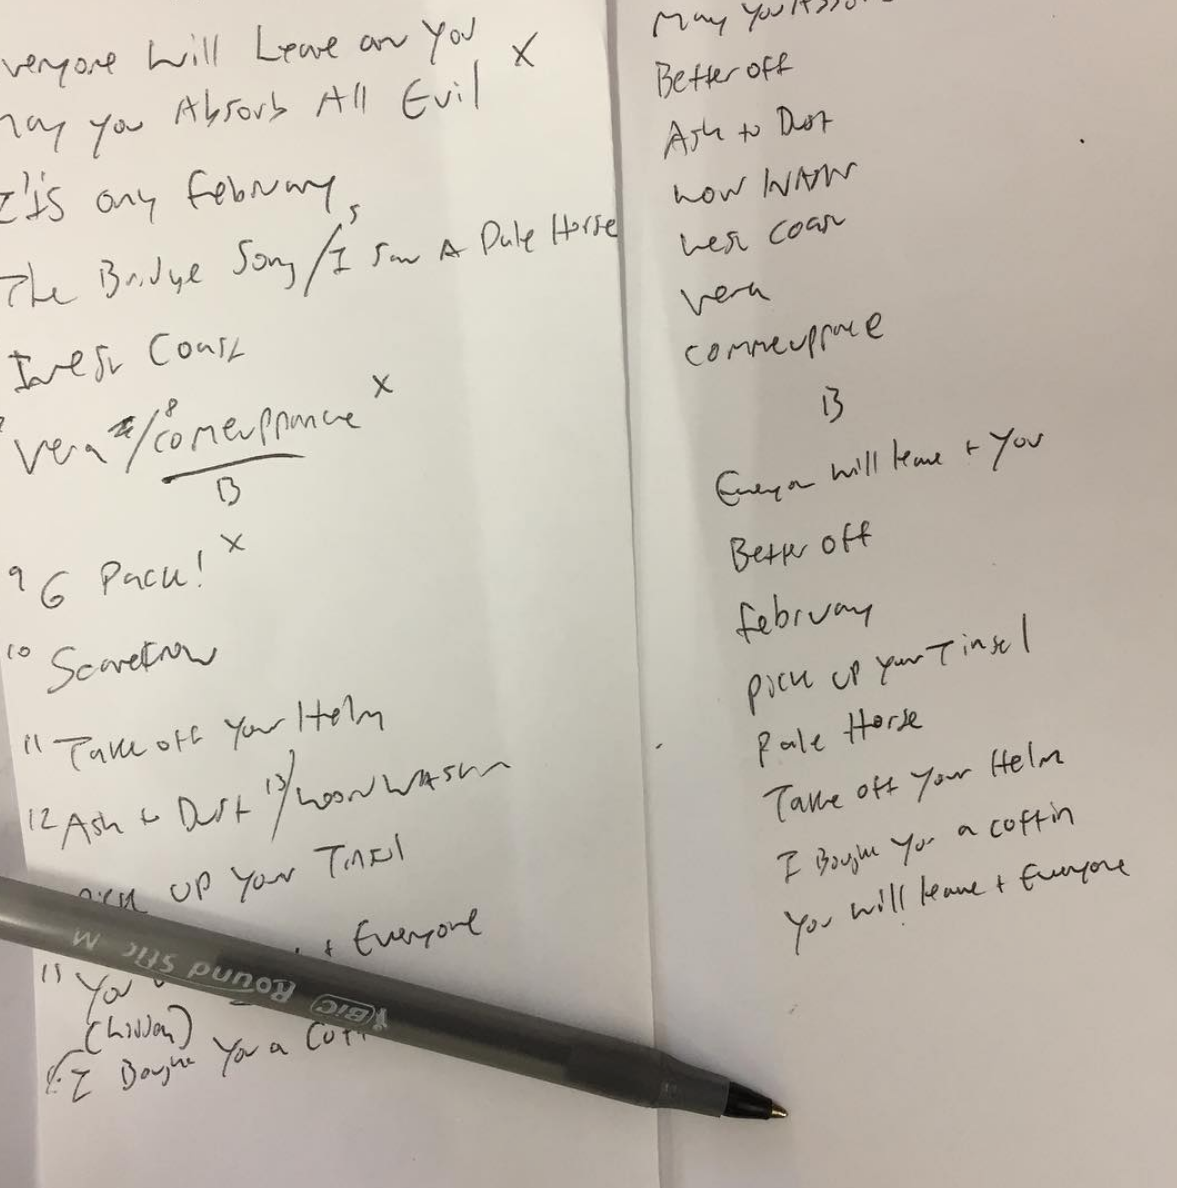 4.27.2017 i stood in a gas station & rewrote the track listings toward a more final LP order